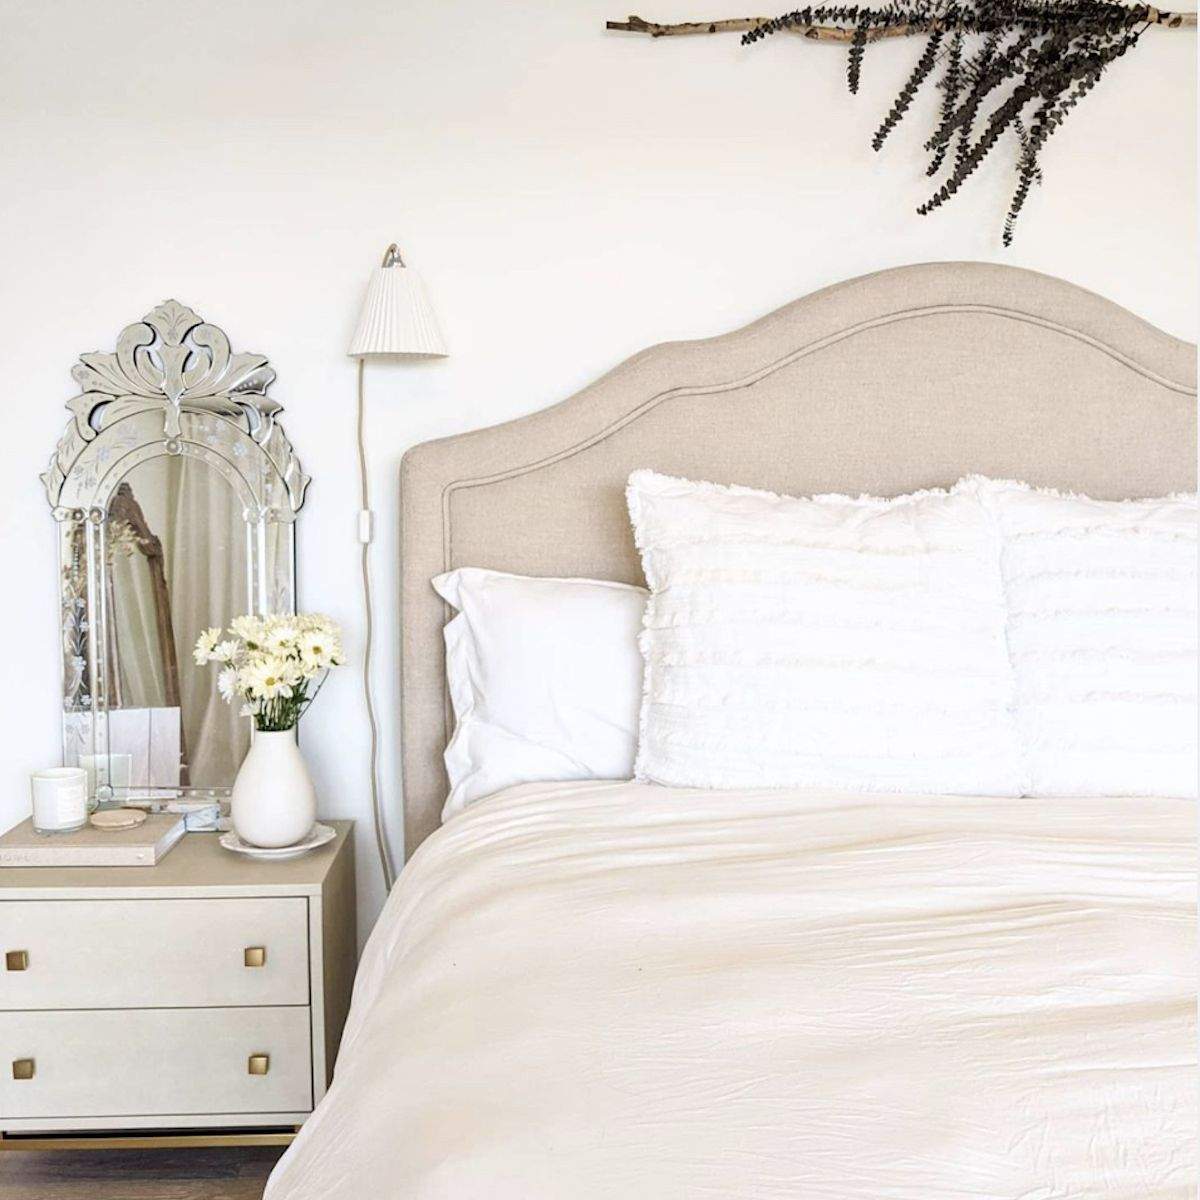 neutral bedroom with silver ornate mirror on bedside table